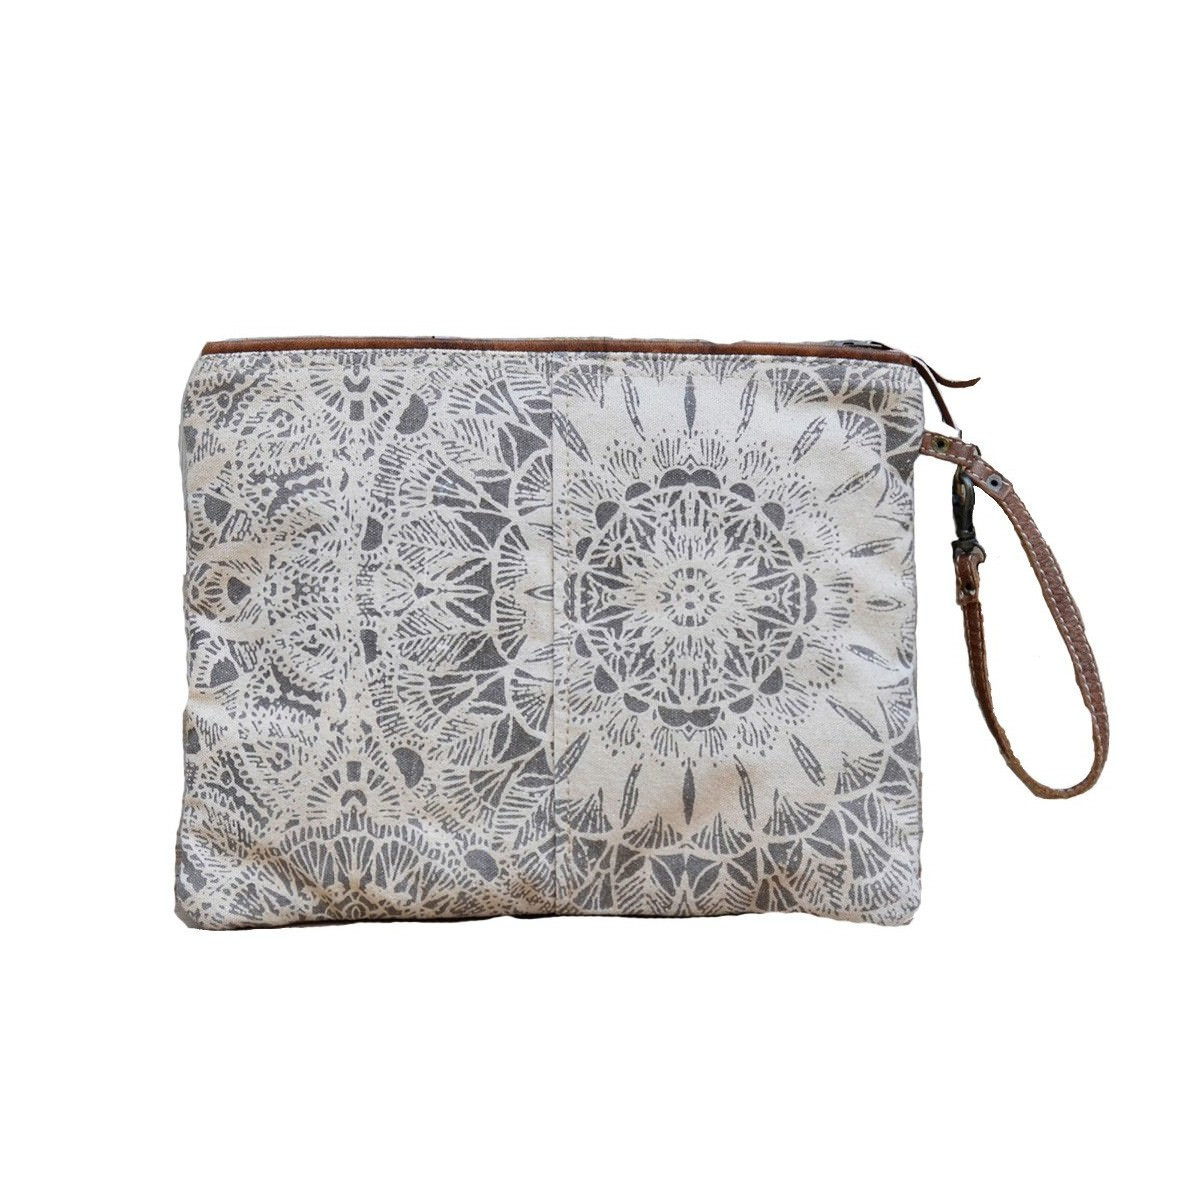 Cheyenne Hanna Canvas Clutch Bag